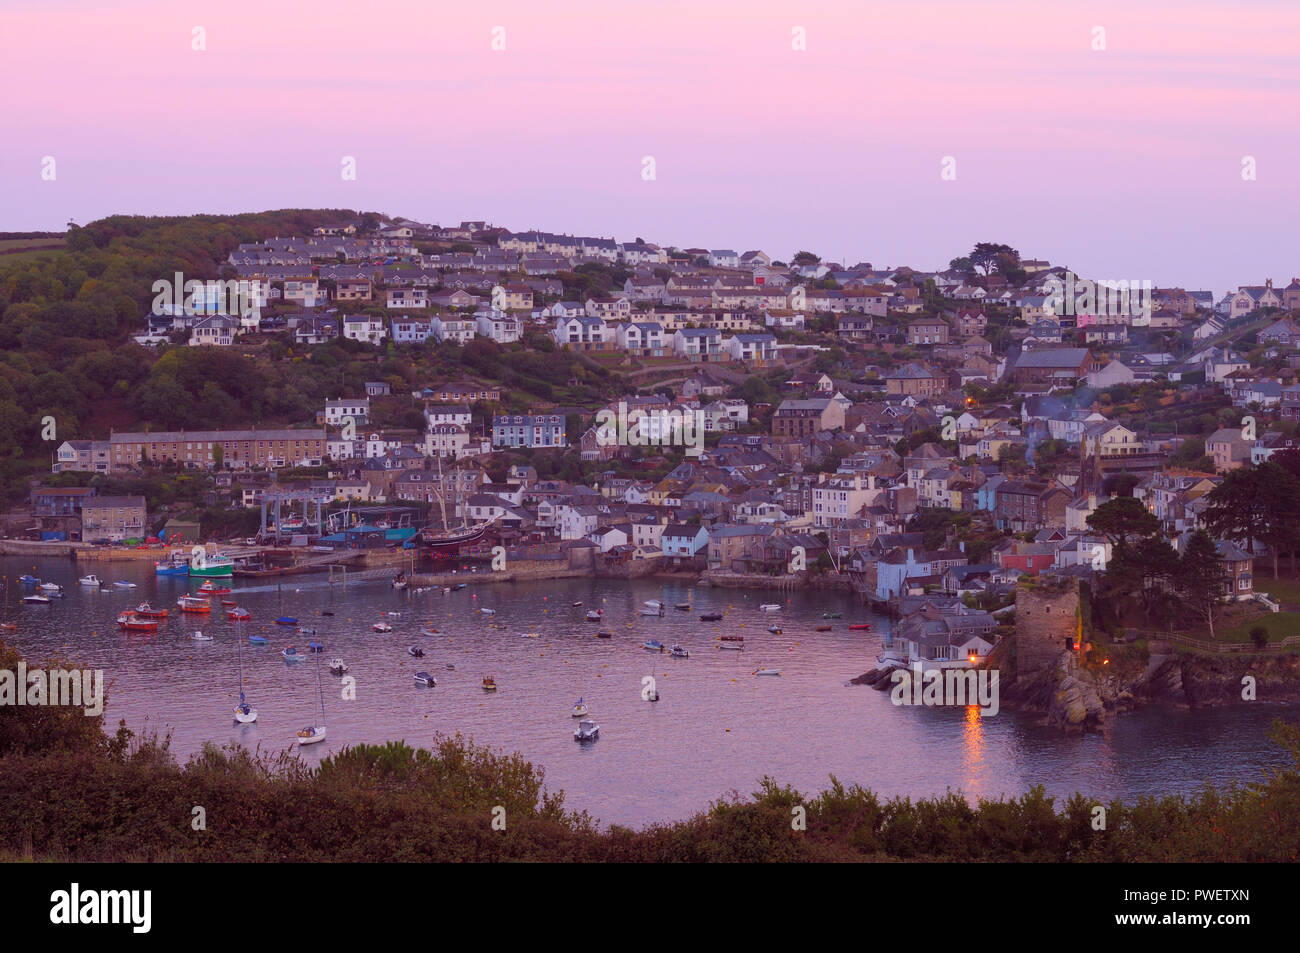 The charming Cornish fishing village of Polruan viewed from across the river in Fowey, Cornwall, England, UK Stock Photo